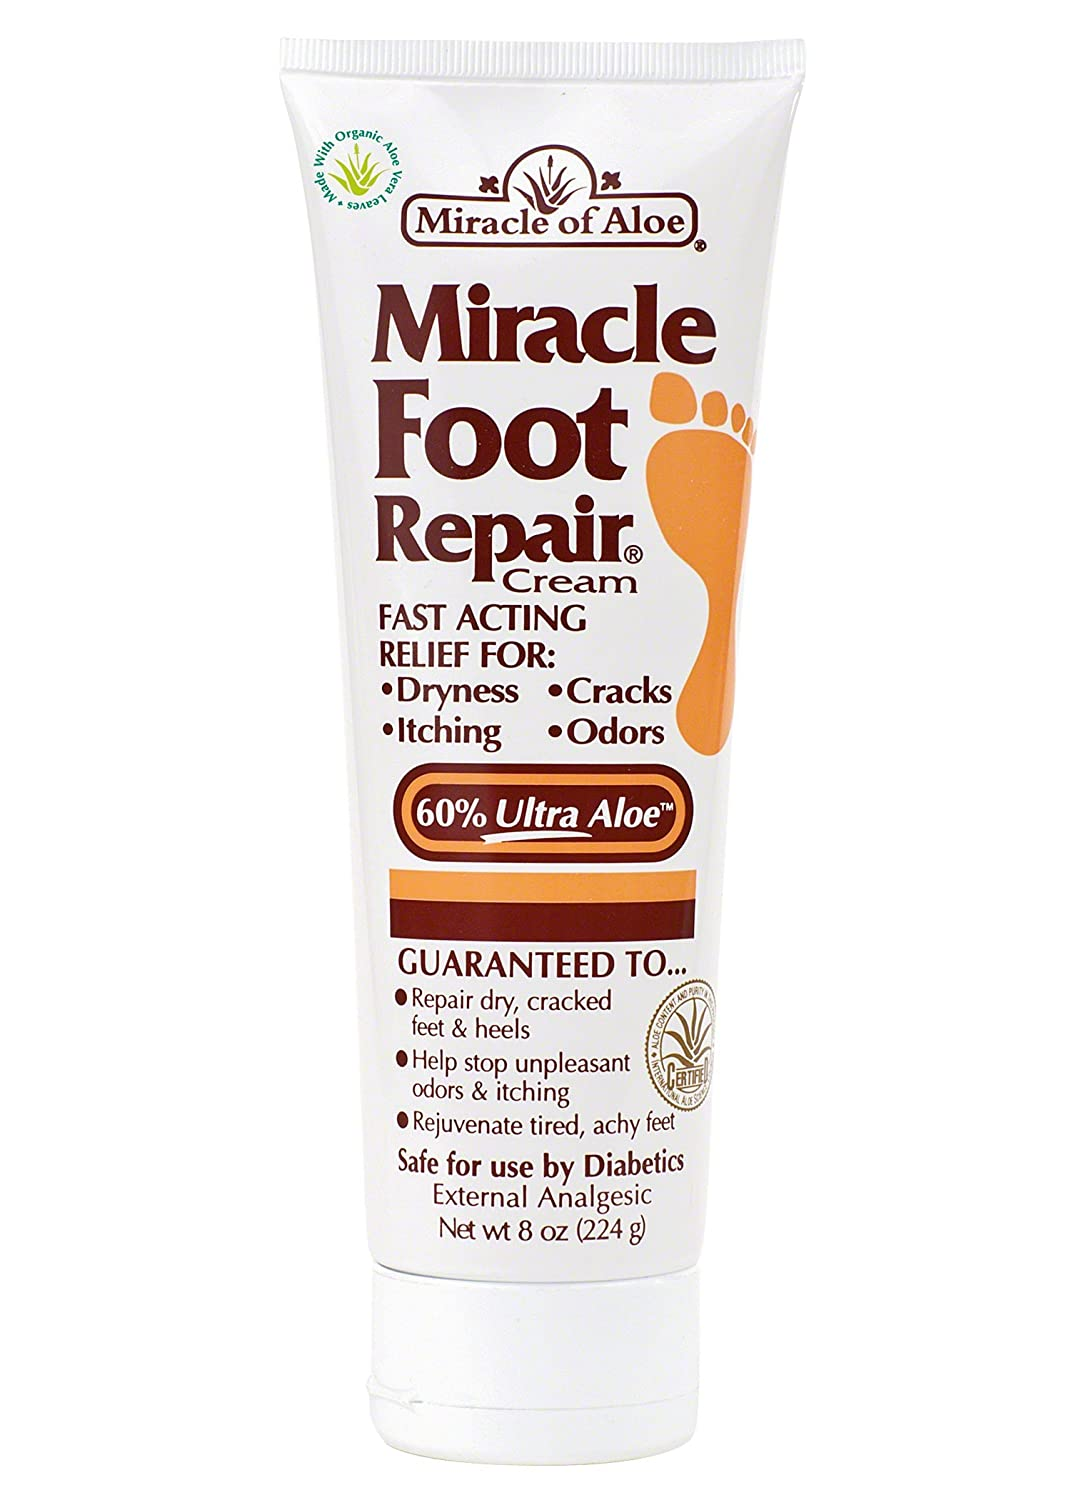 Miracle of Aloe, Miracle Foot Repair Cream with 60% UltraAloe 8 ounce tube